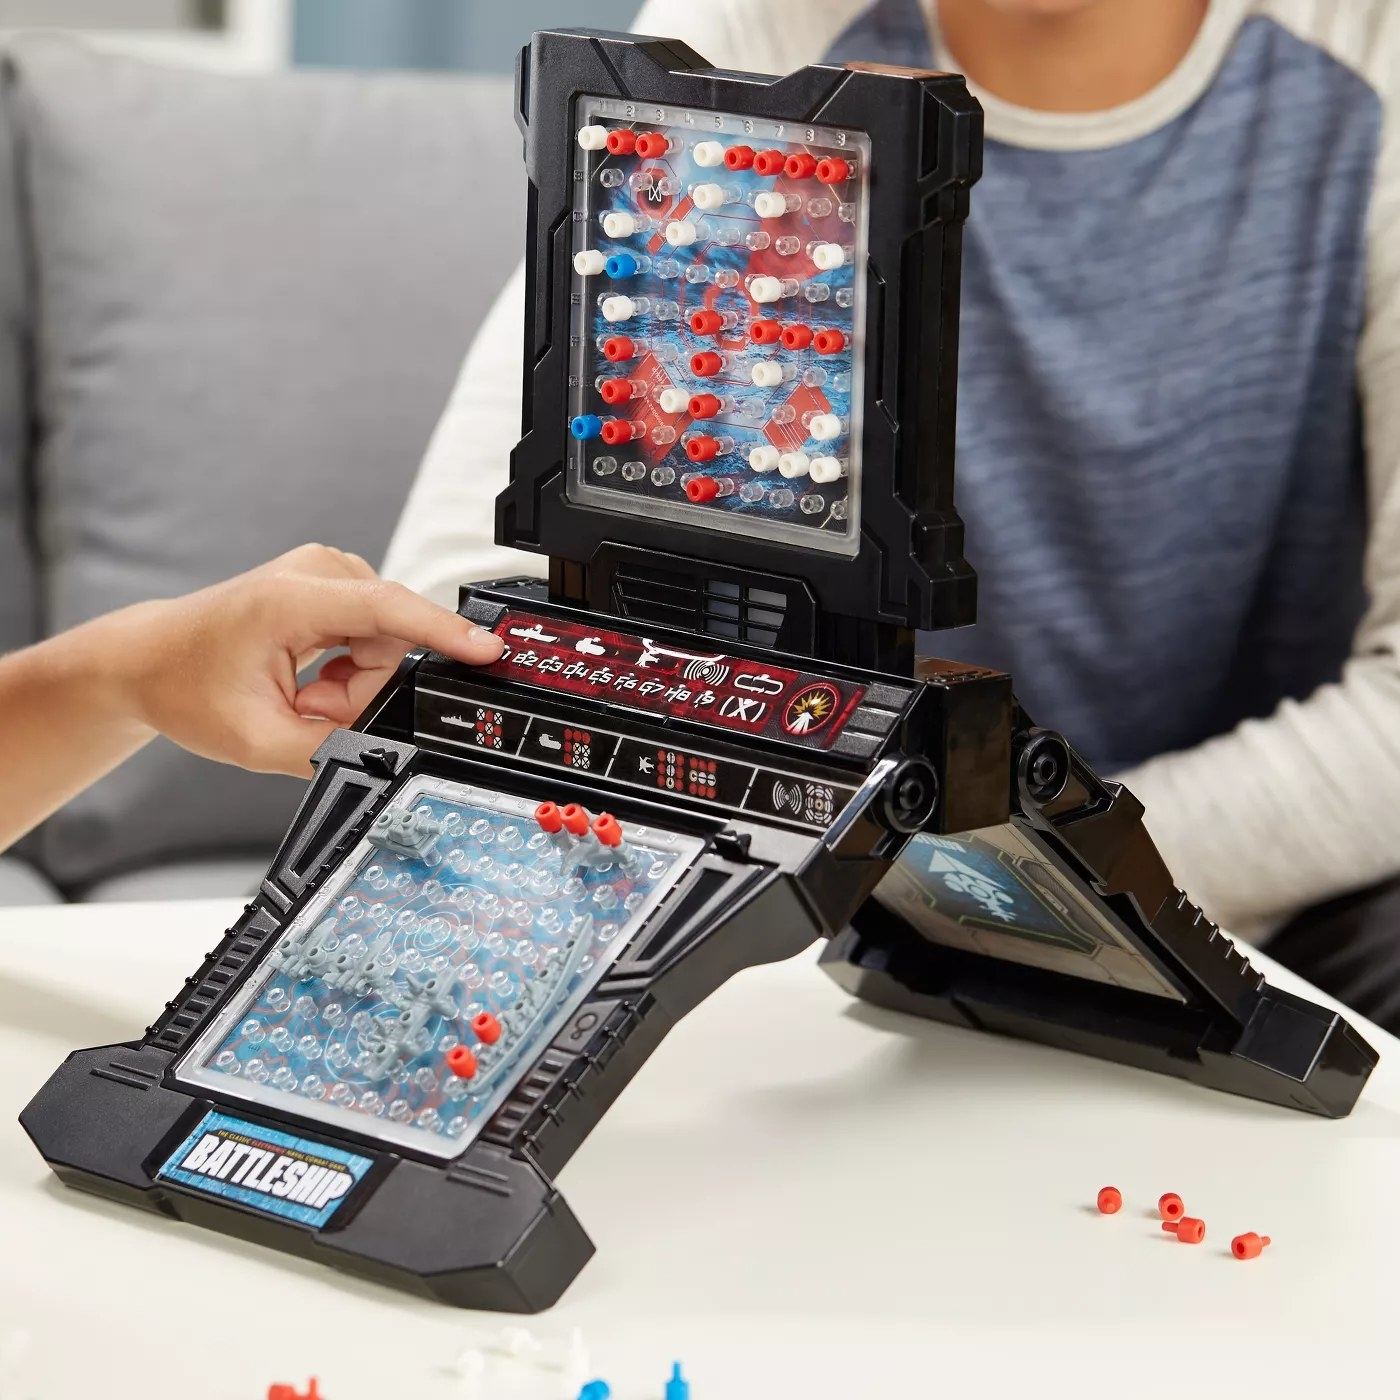 The electronic gameboard